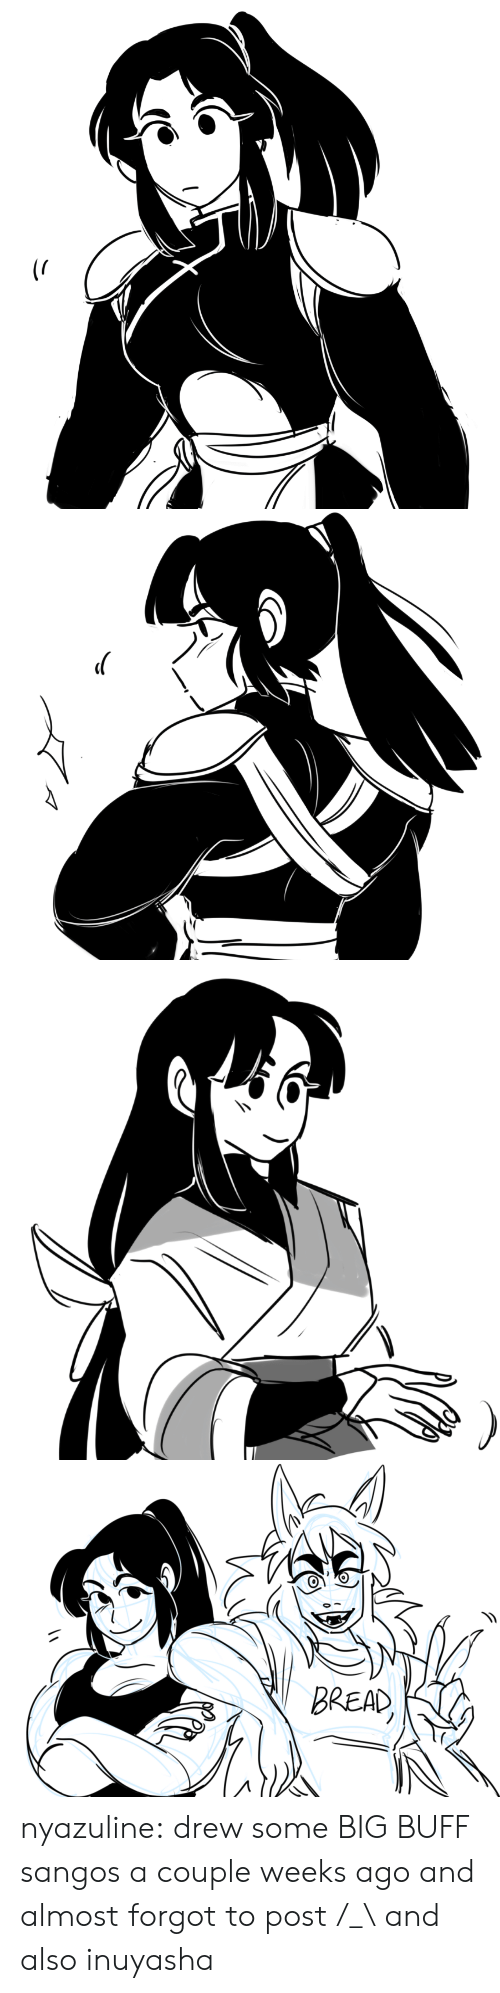 A Couple: BREAD nyazuline: drew some BIG BUFF sangos a couple weeks ago and almost forgot to post /_\  and also inuyasha